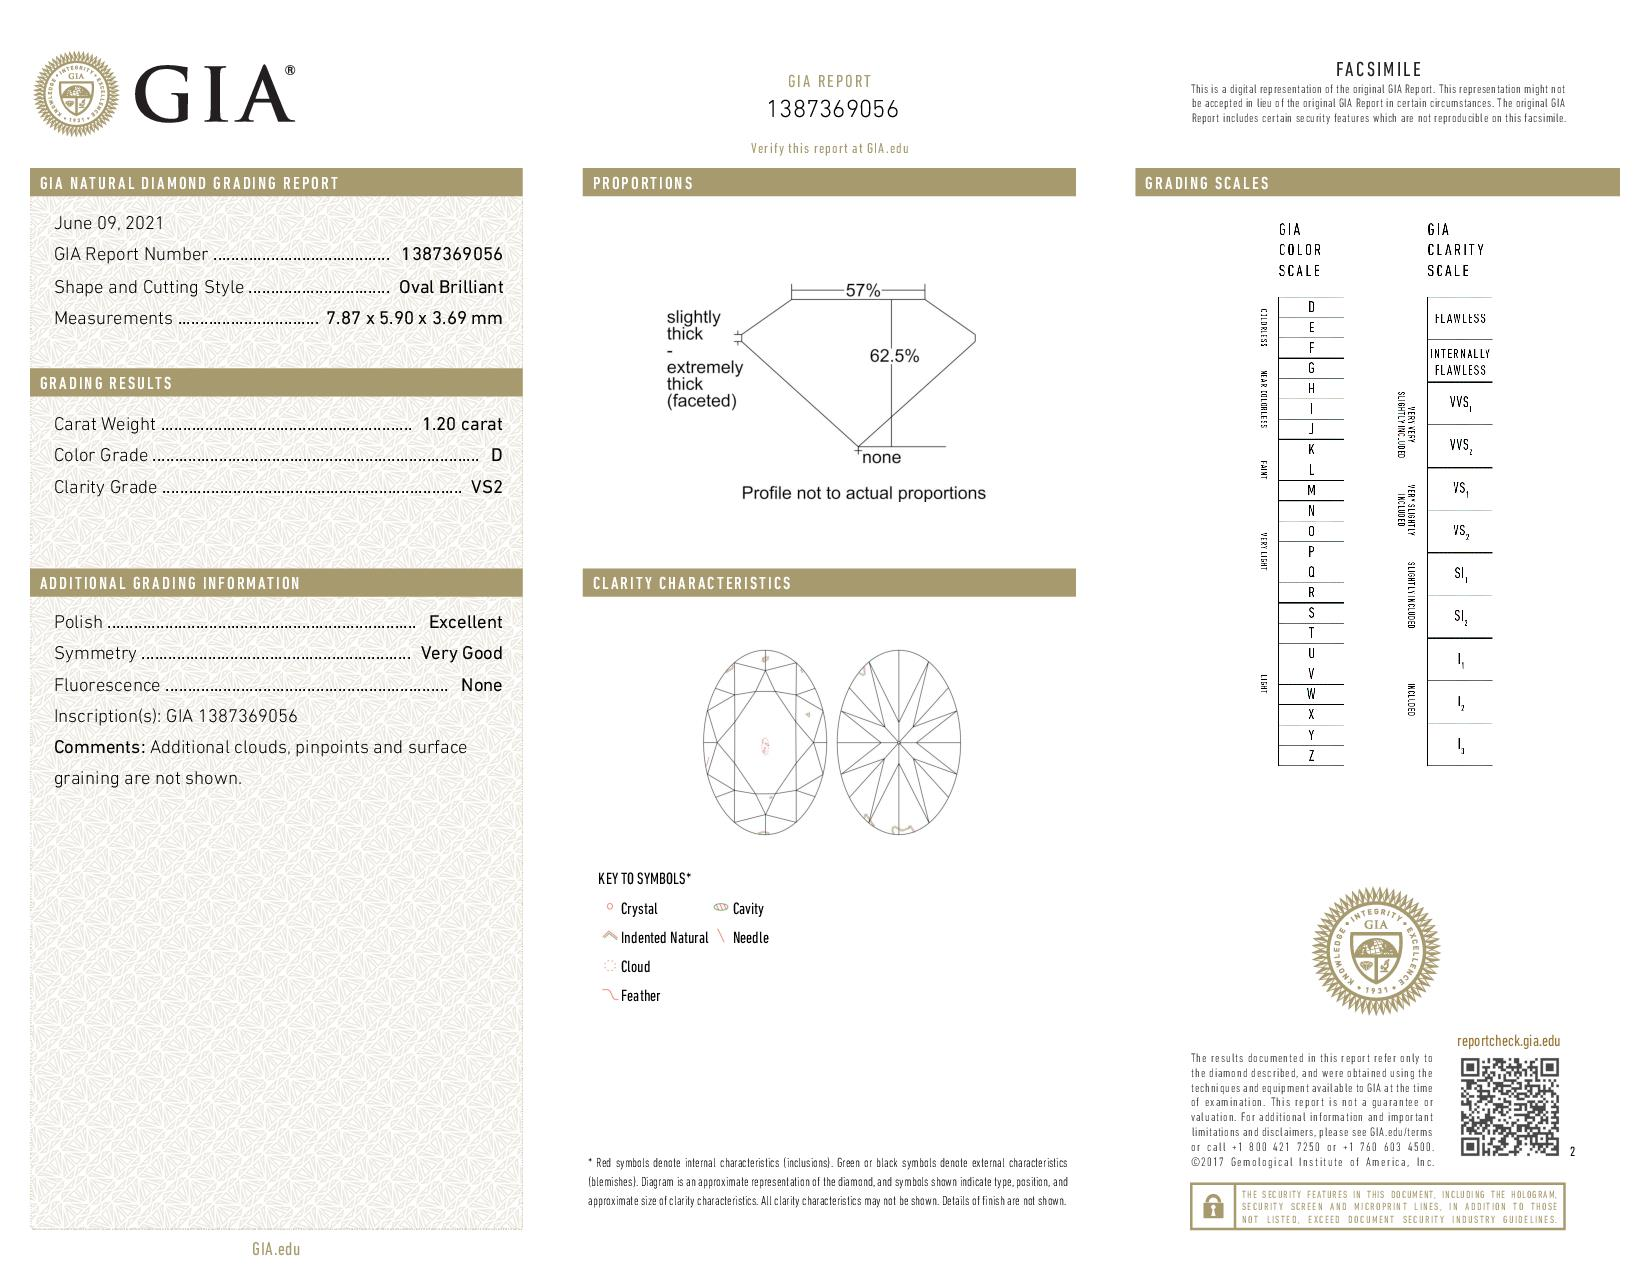 This is a 1.20 carat oval shape, D color, VS2 clarity natural diamond accompanied by a GIA grading report.